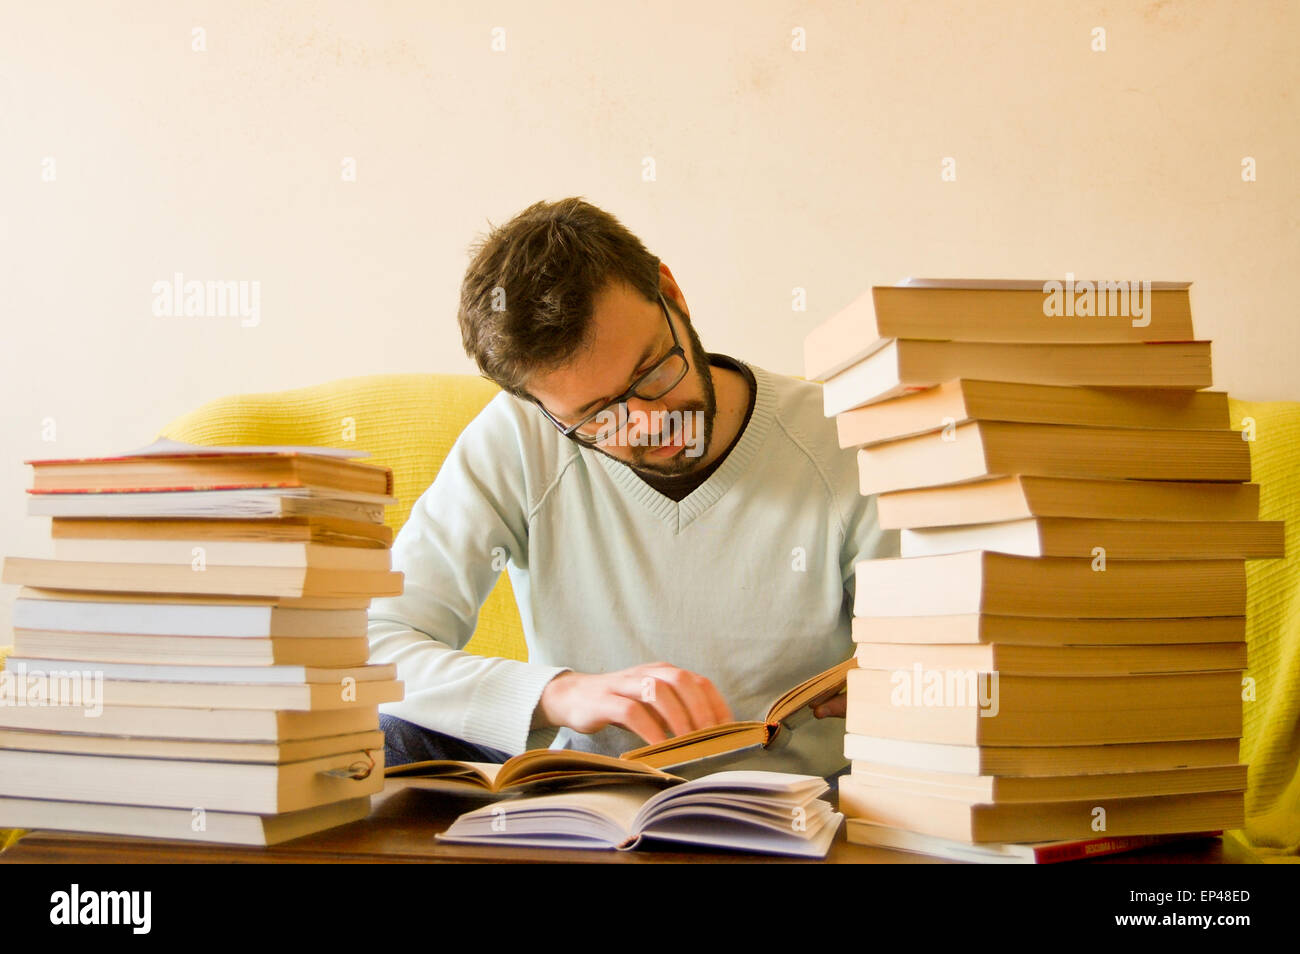 Man studying with a  pile of books in front of him Stock Photo